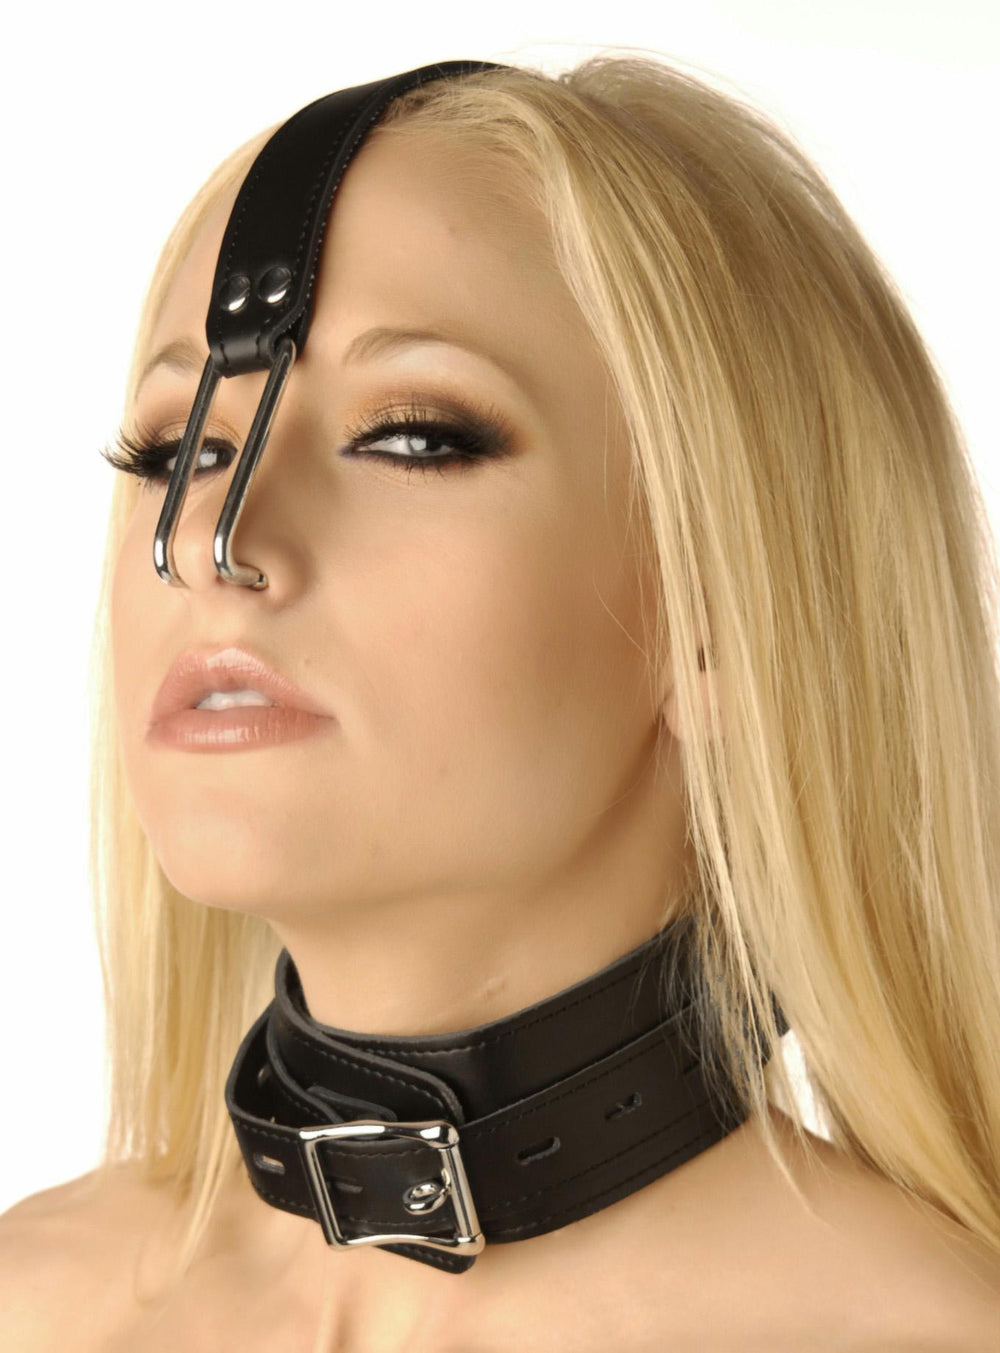 Collar with Nose Hook - Fun and Kinky Sex Toys